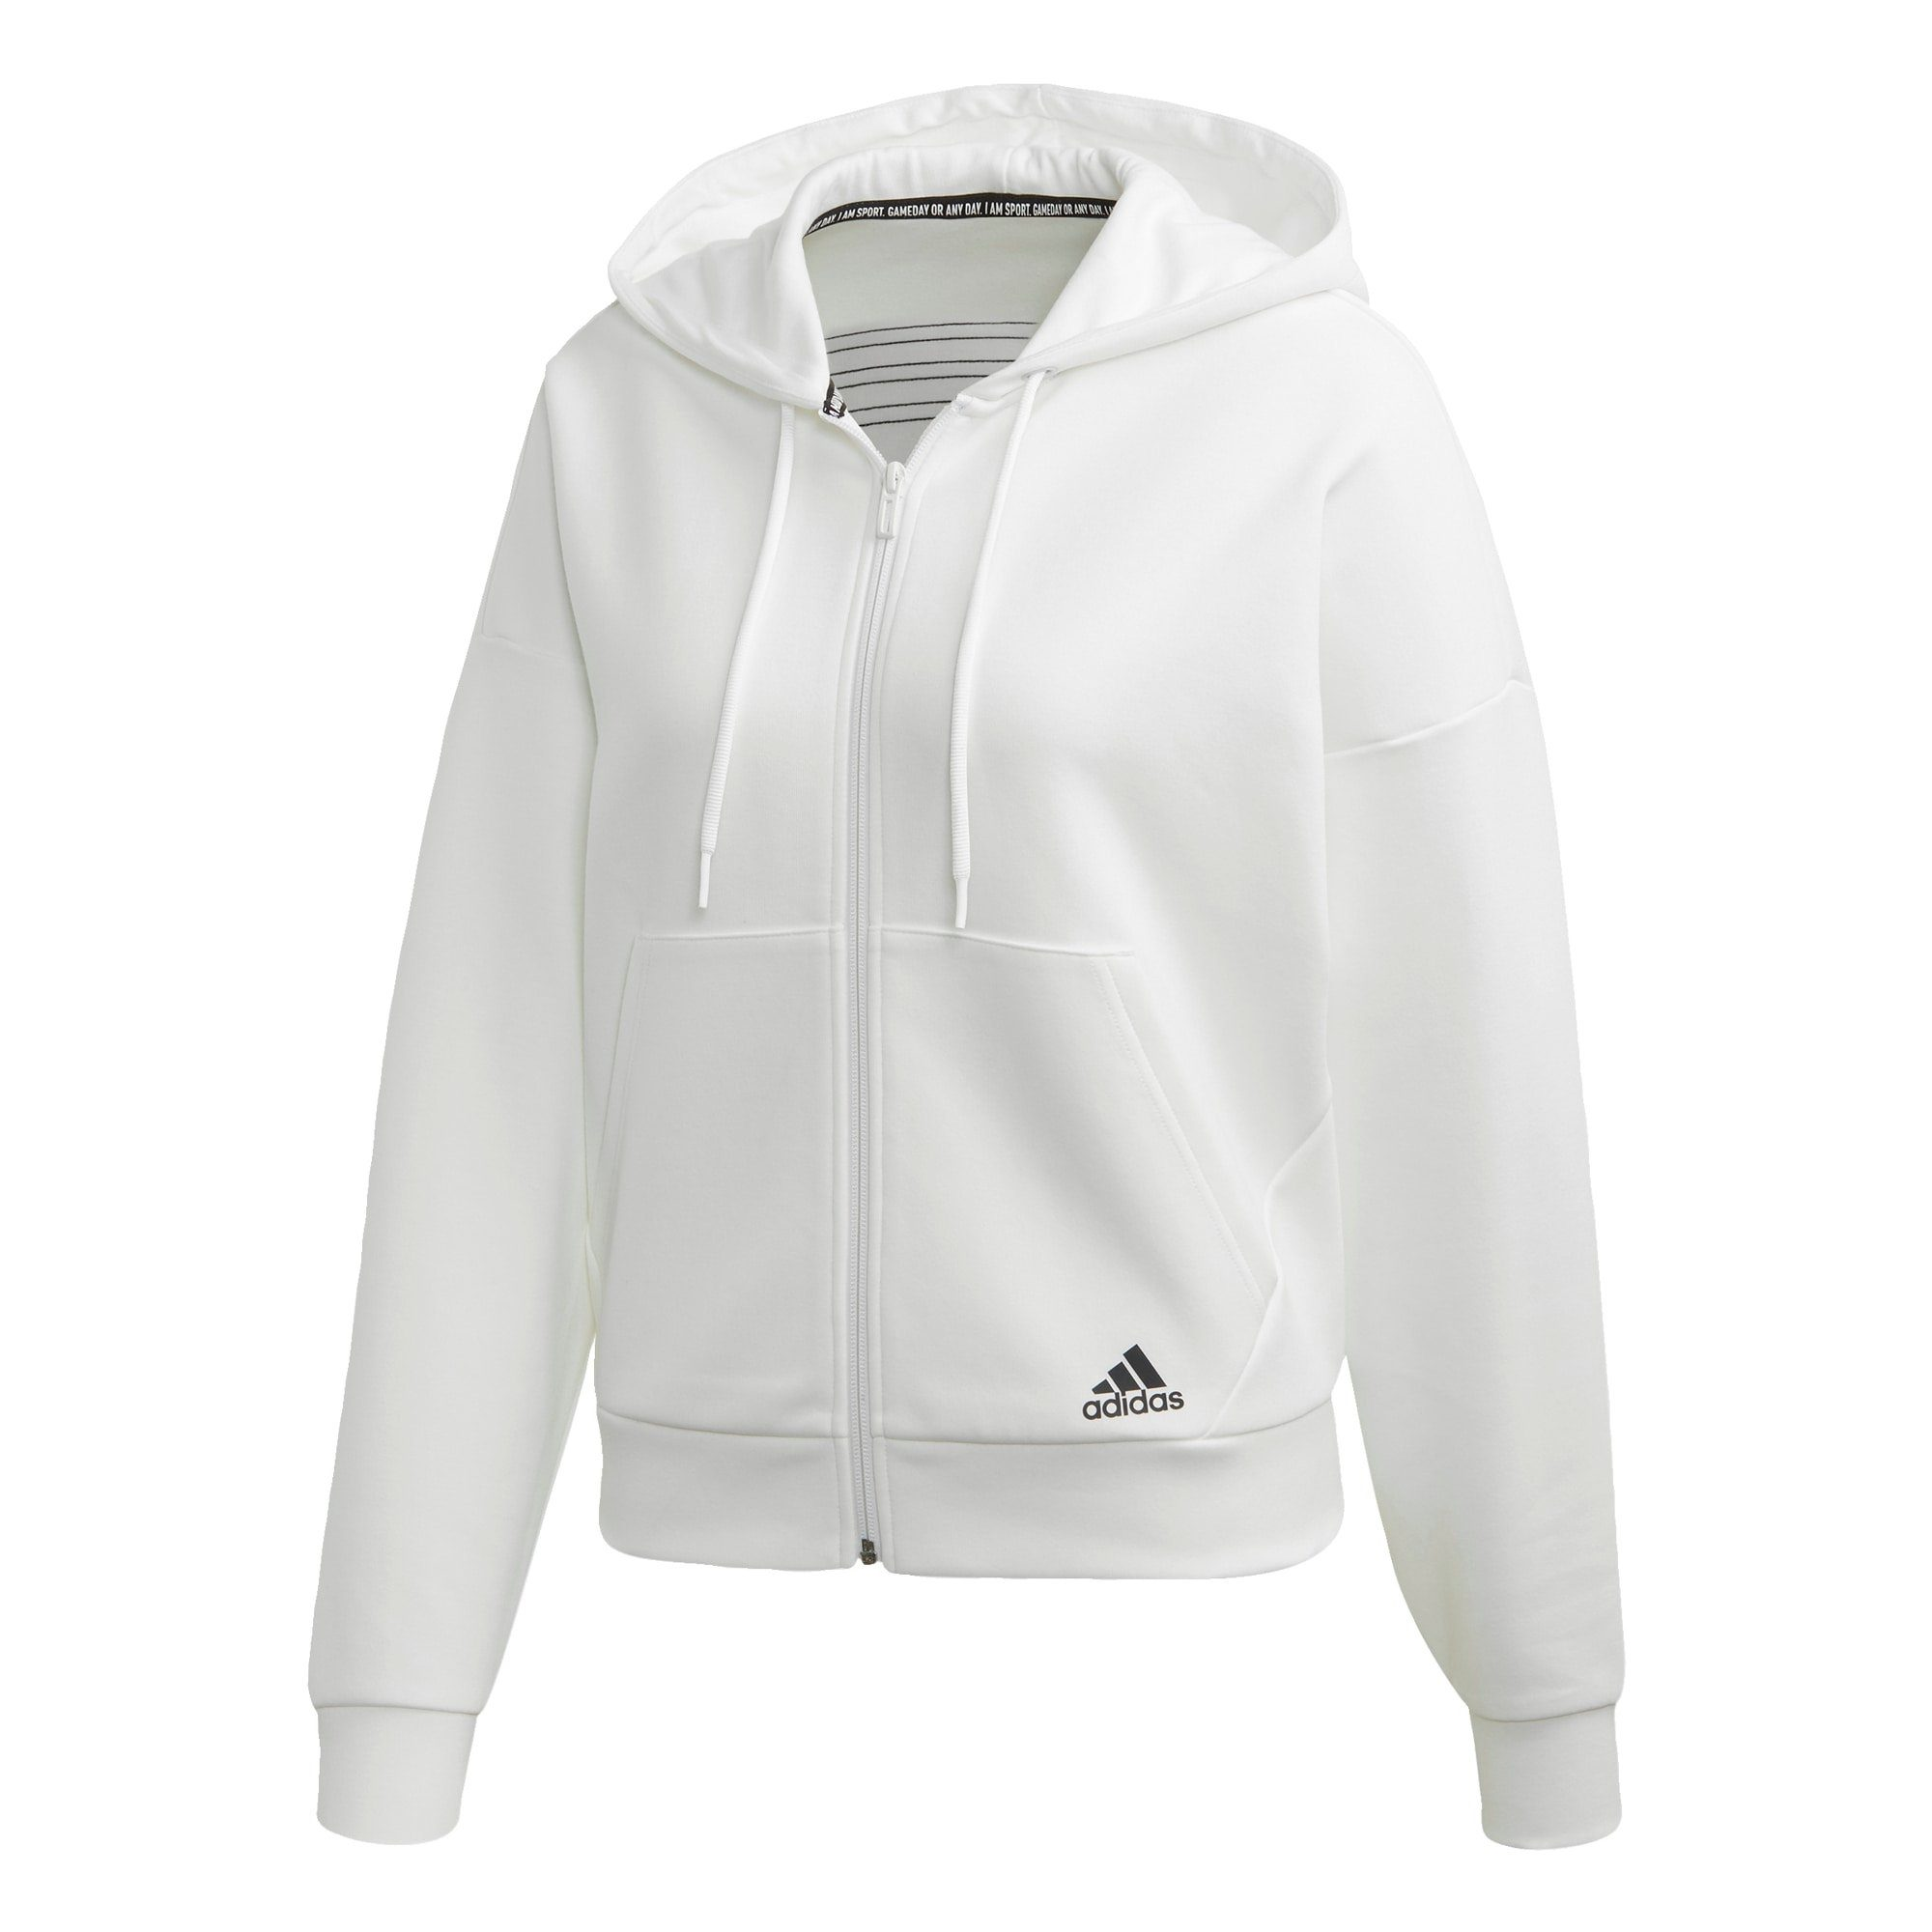 adidas Performance Sweatjacke »Must Haves 3 Streifen Kapuzenjacke« Must Haves online kaufen | OTTO